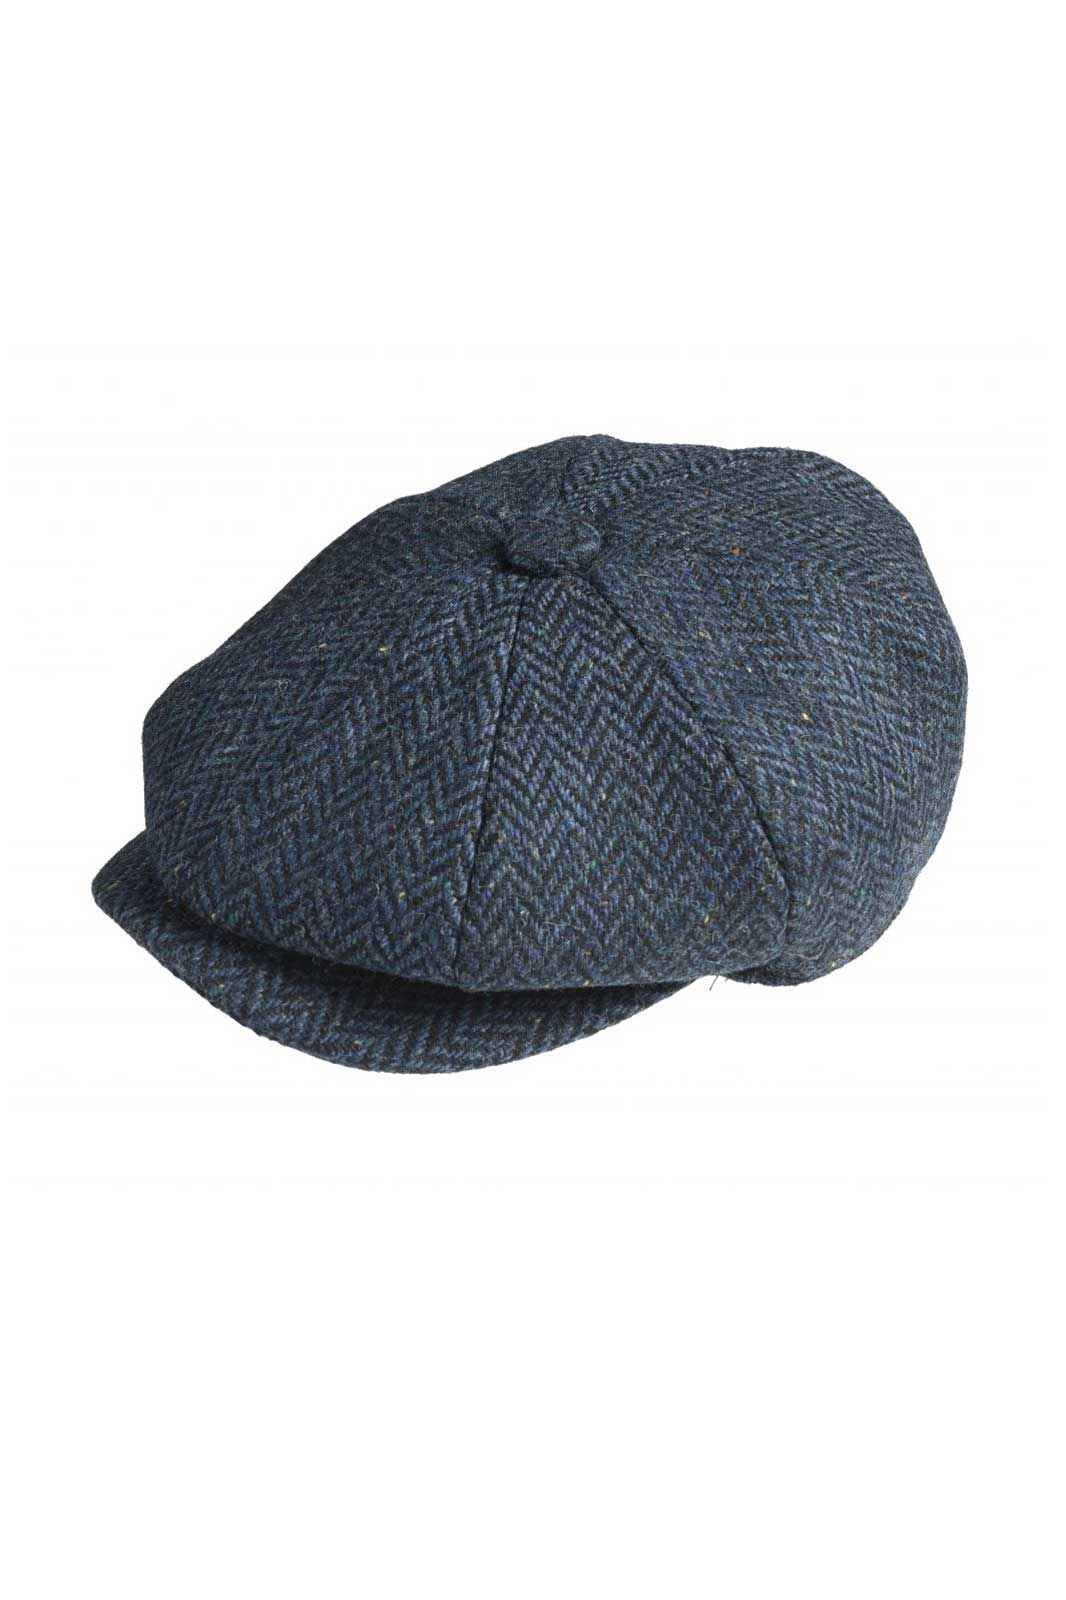 Newsboy Cap Navy Herringbone